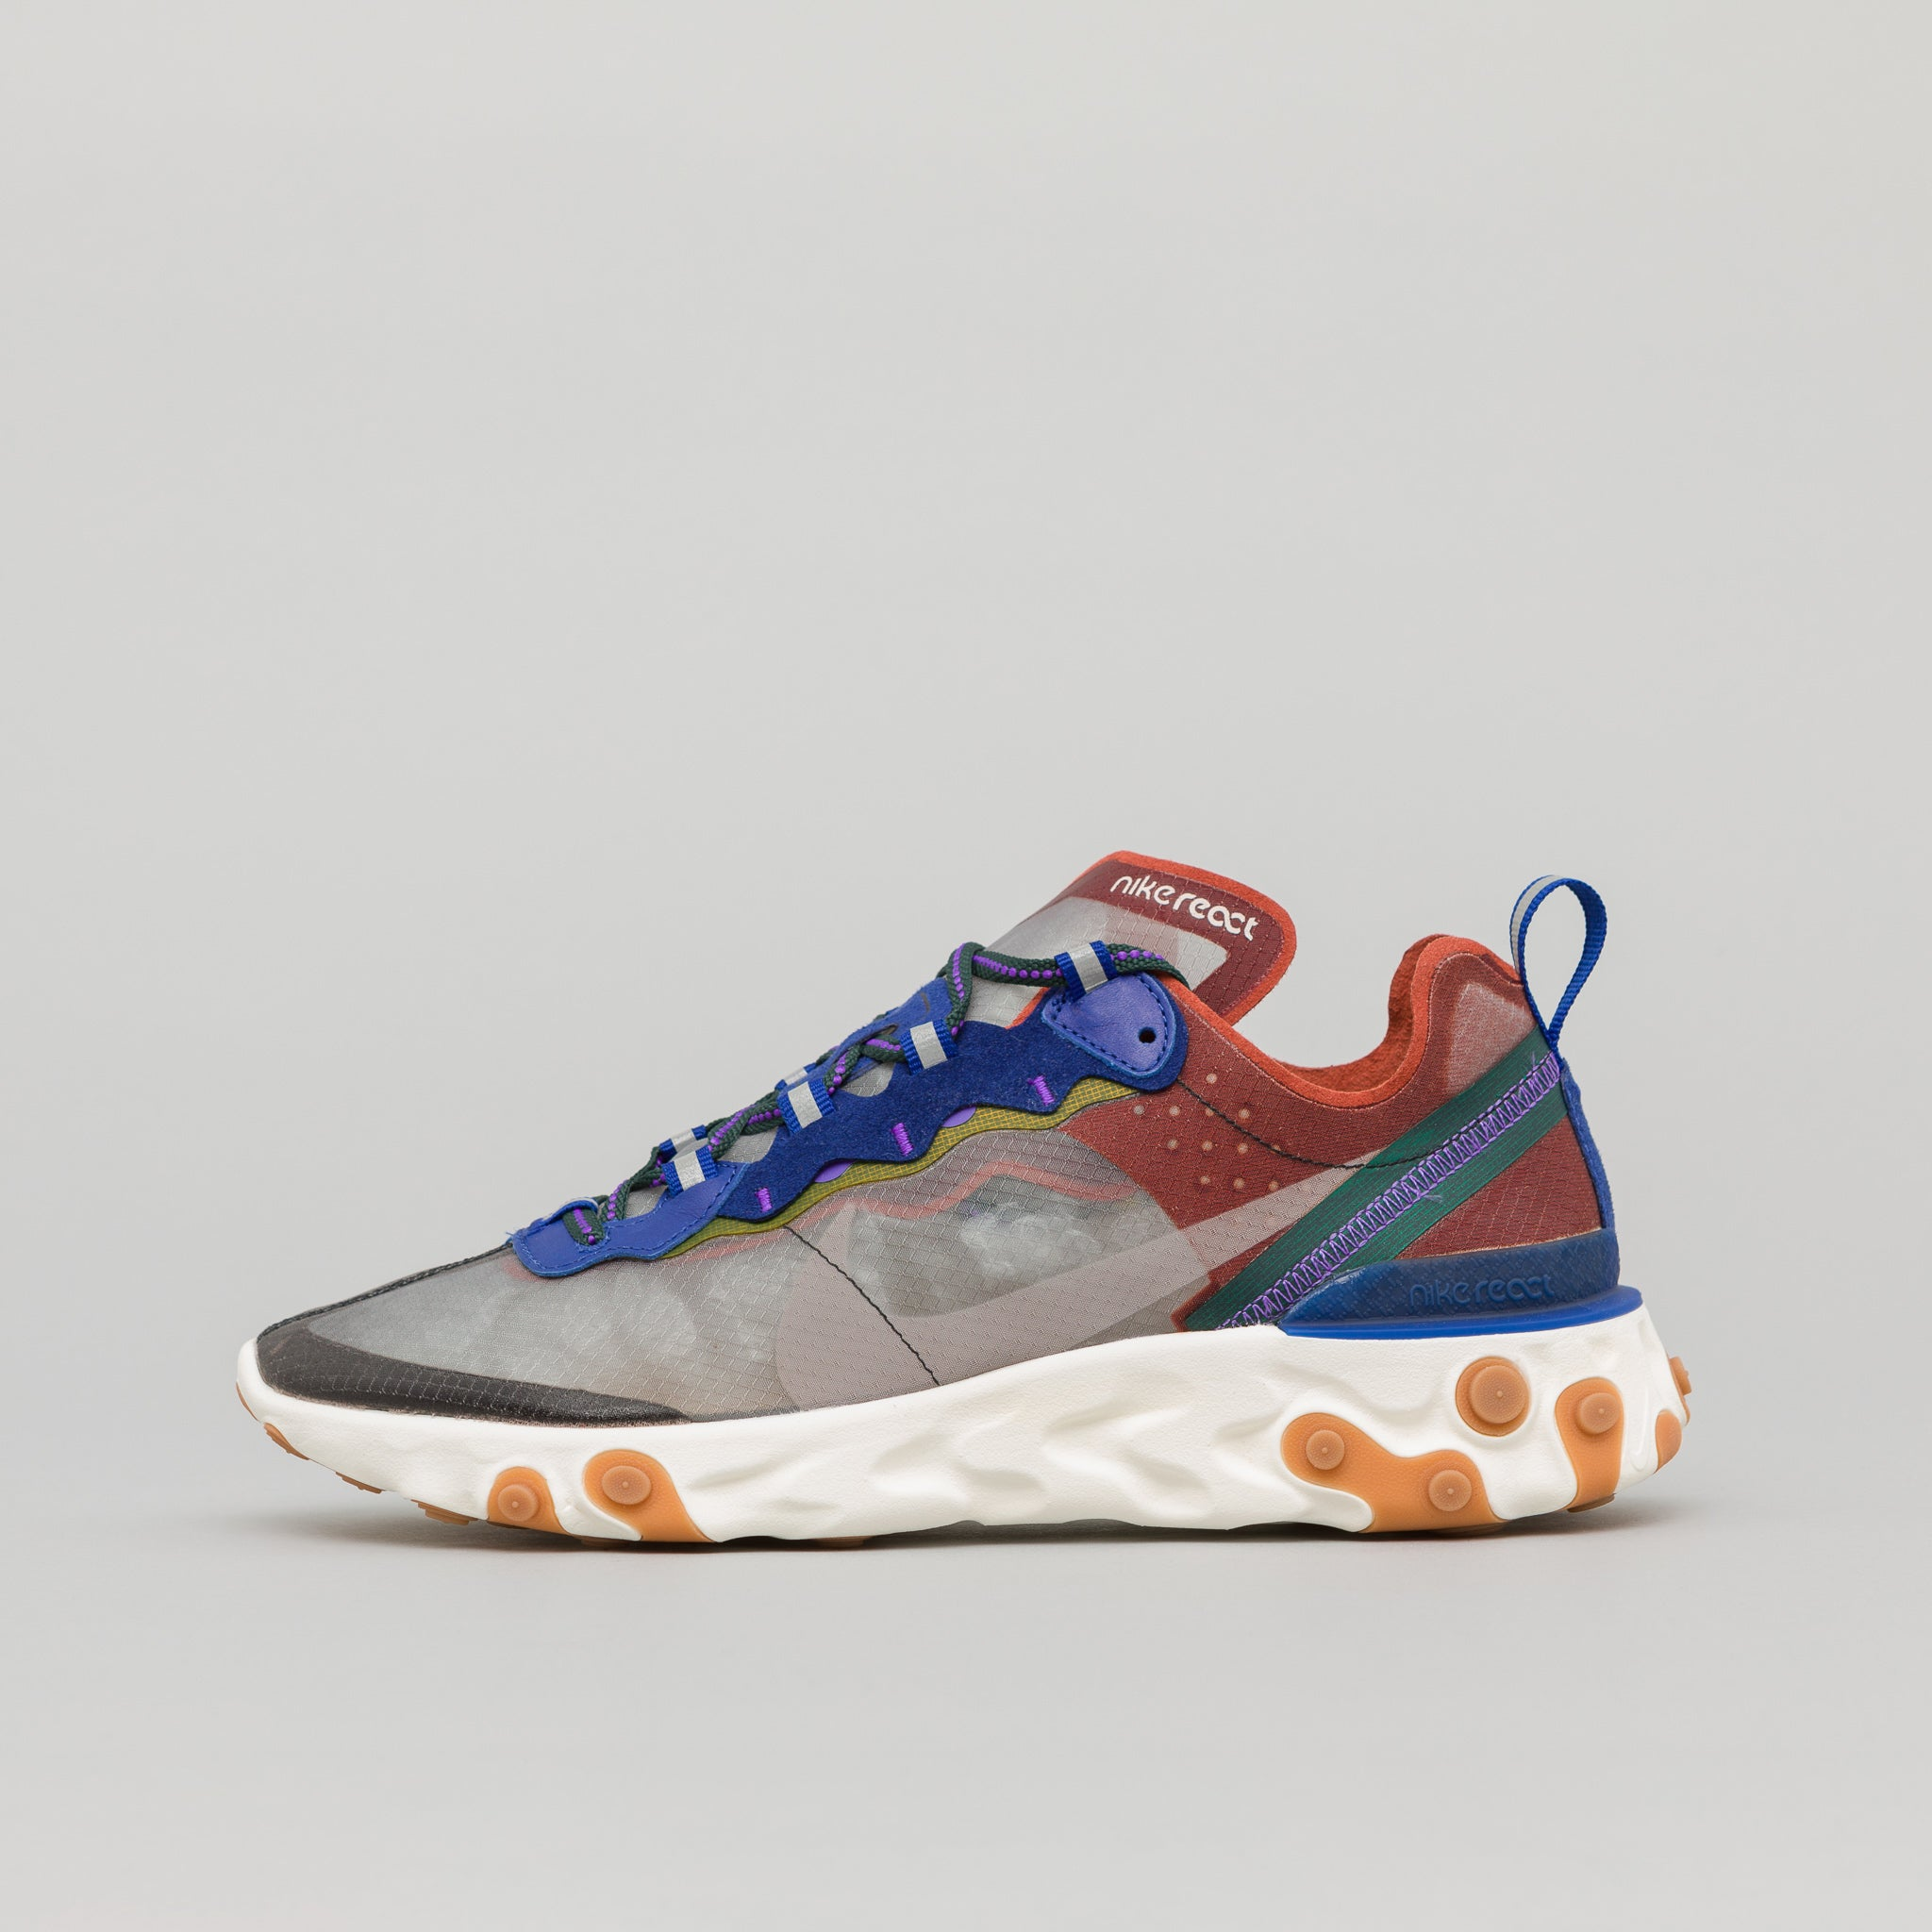 React Element 87 in Dusty Peach/Grey